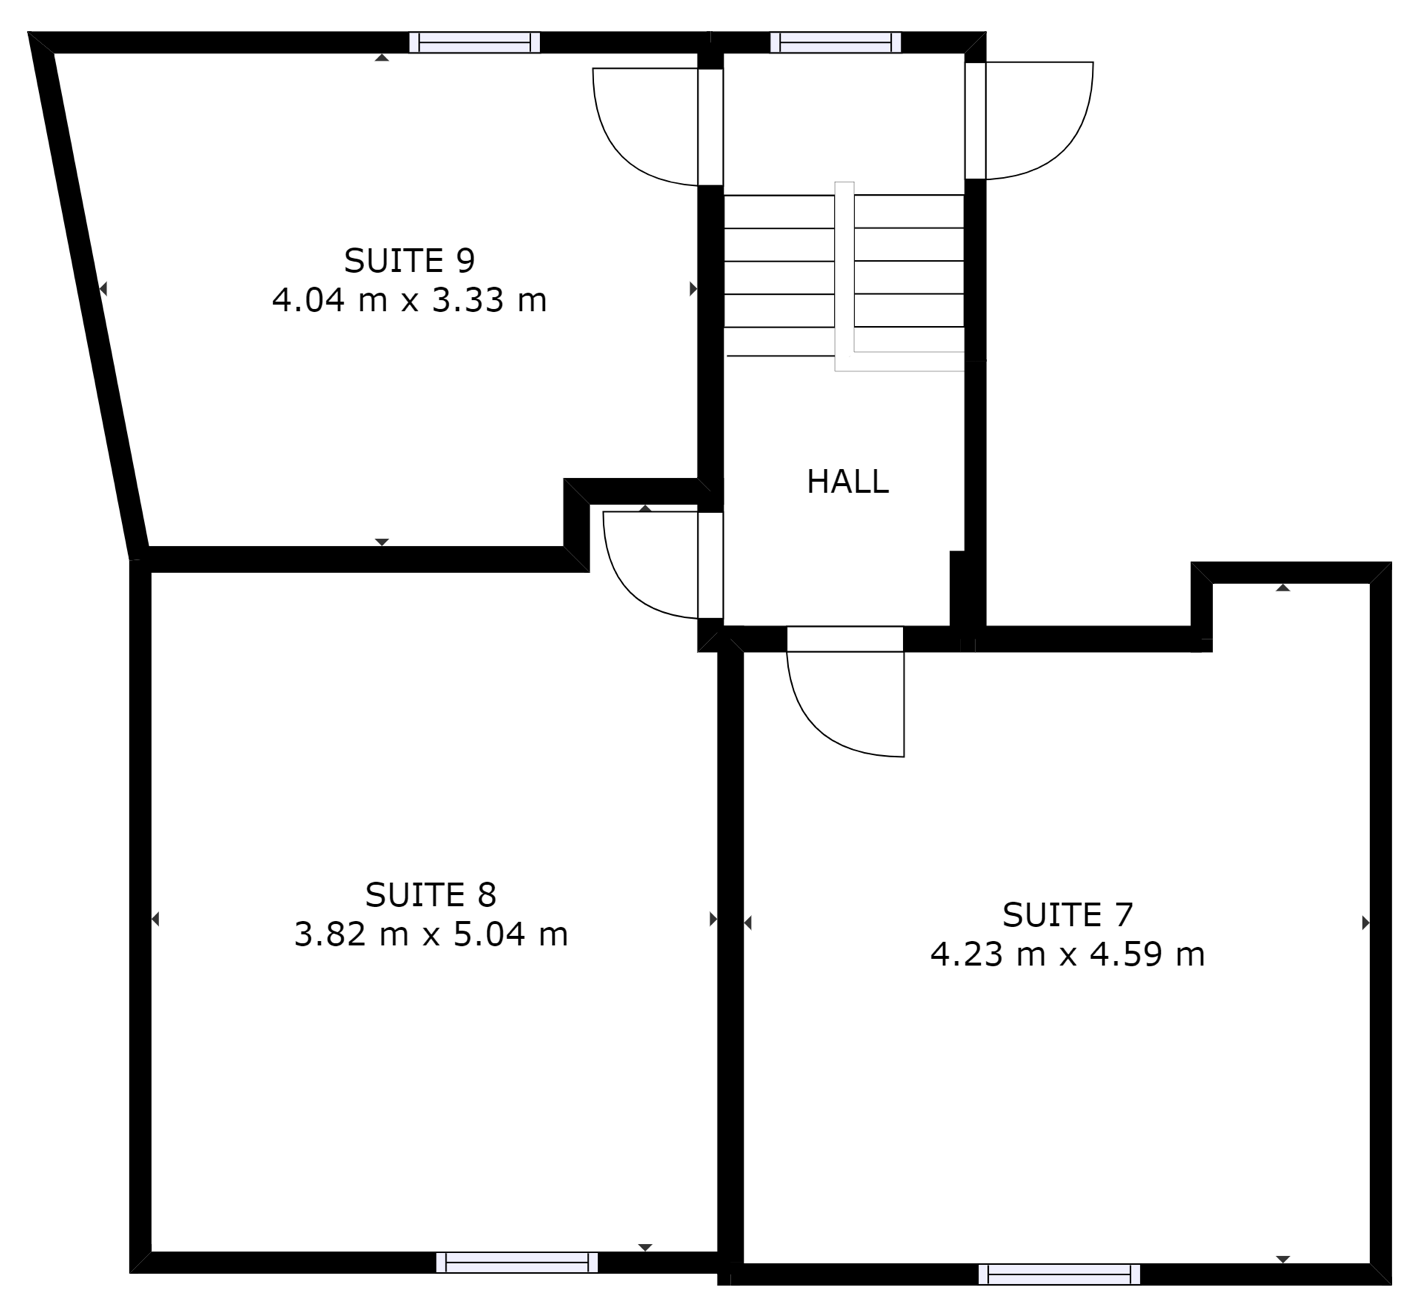 Merchant House Second Floor plan and layout of private office suites